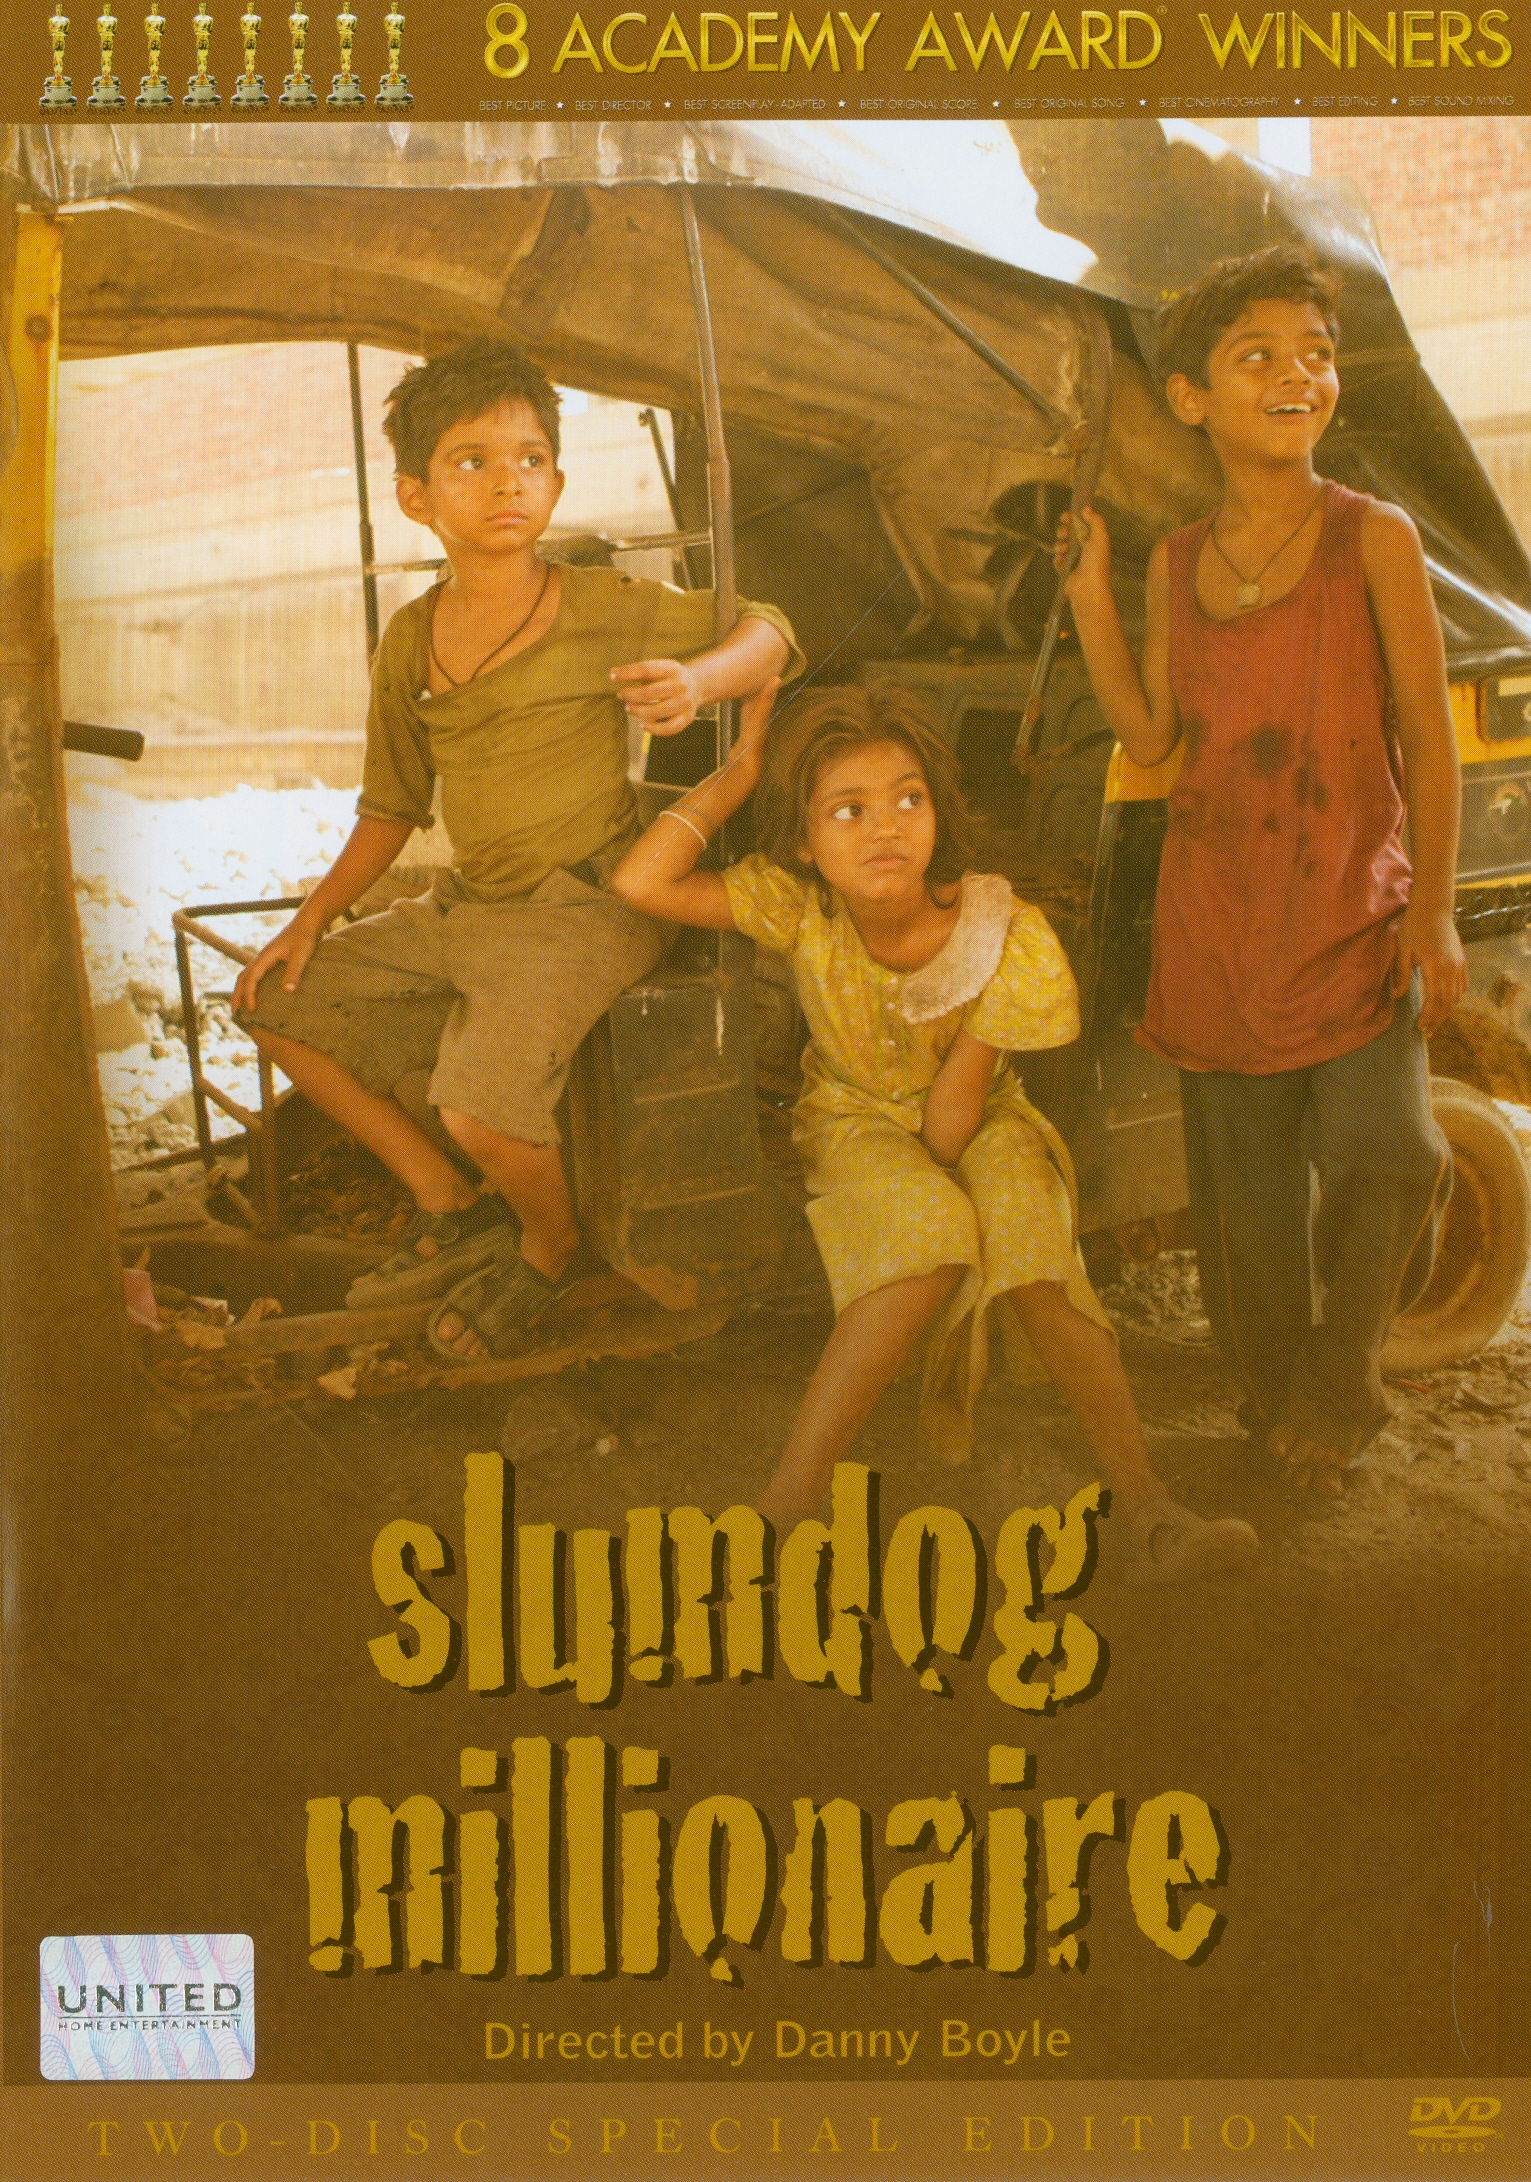 Slumdog millionaire[videorecording] /a Fox Searchlight Pictures, Warner Bros. Pictures, Celador Films, Film4 presentation||Slum dog millionaire